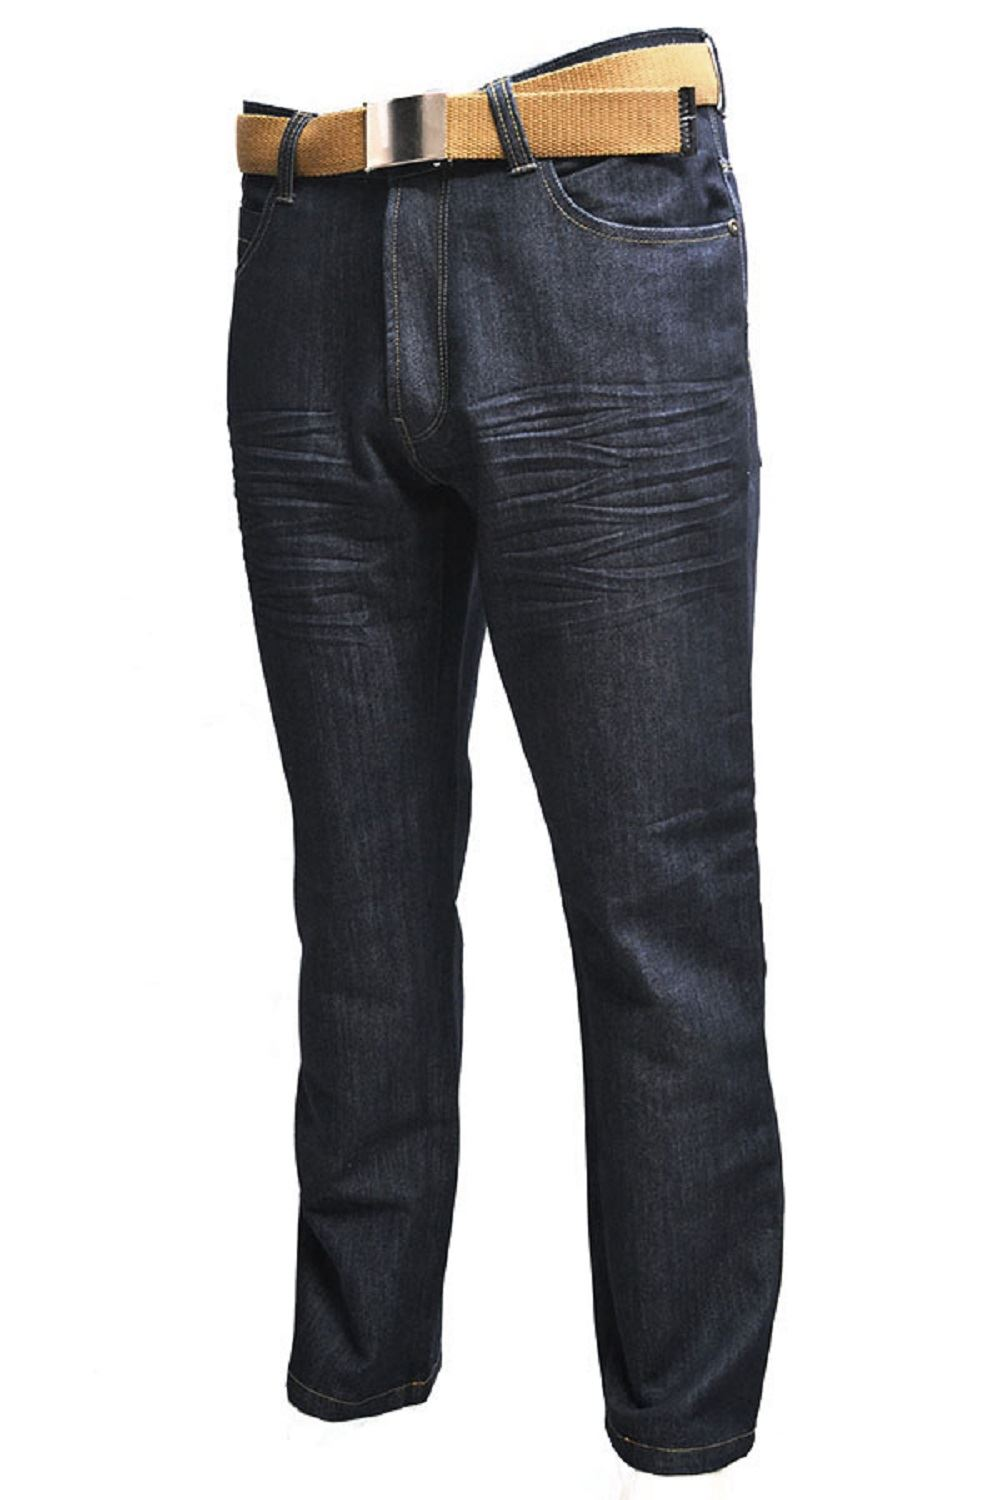 Mens-Classic-Fit-Black-Indigo-Jeans-Kori-By-Creon-Previs thumbnail 15